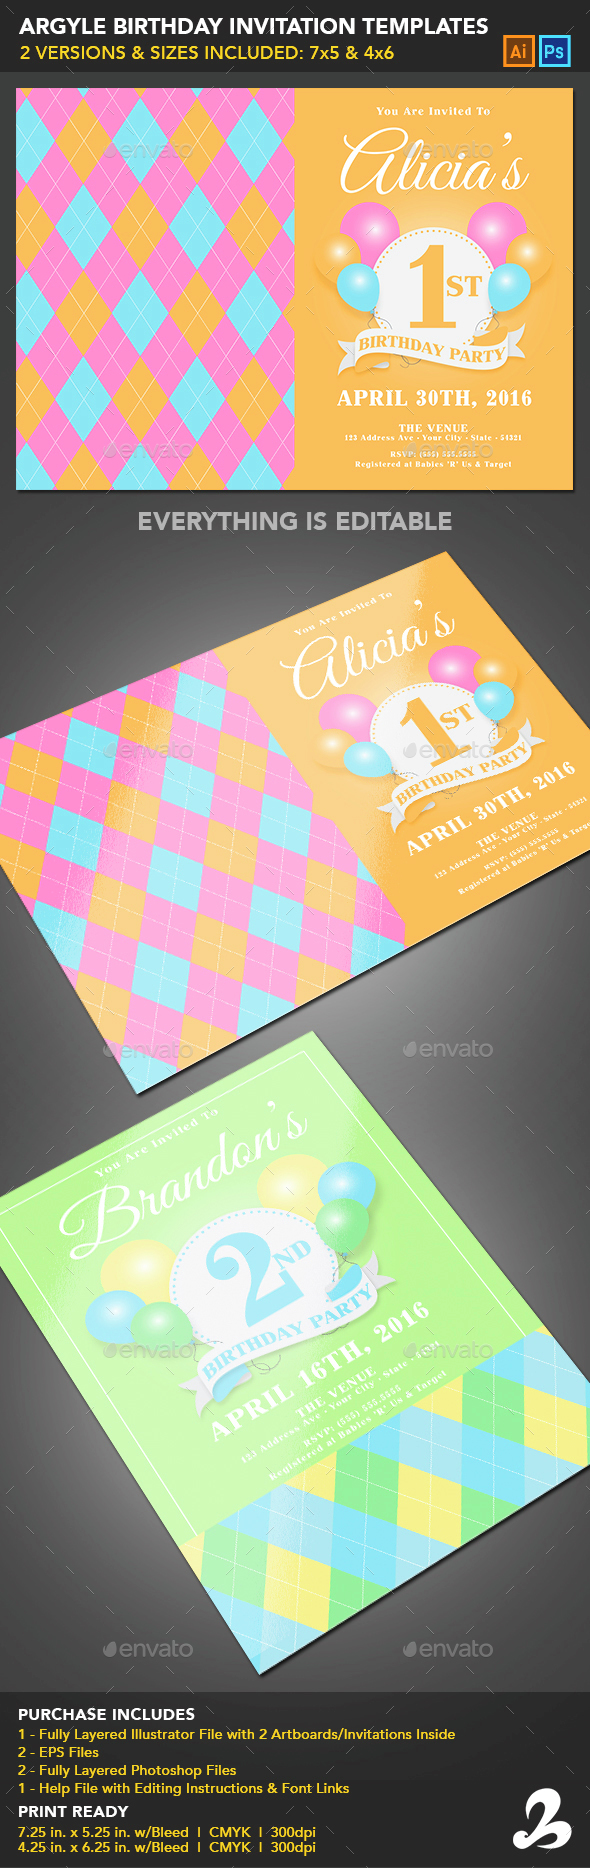 Birthday Invitation Templates - Argyle - Invitations Cards & Invites